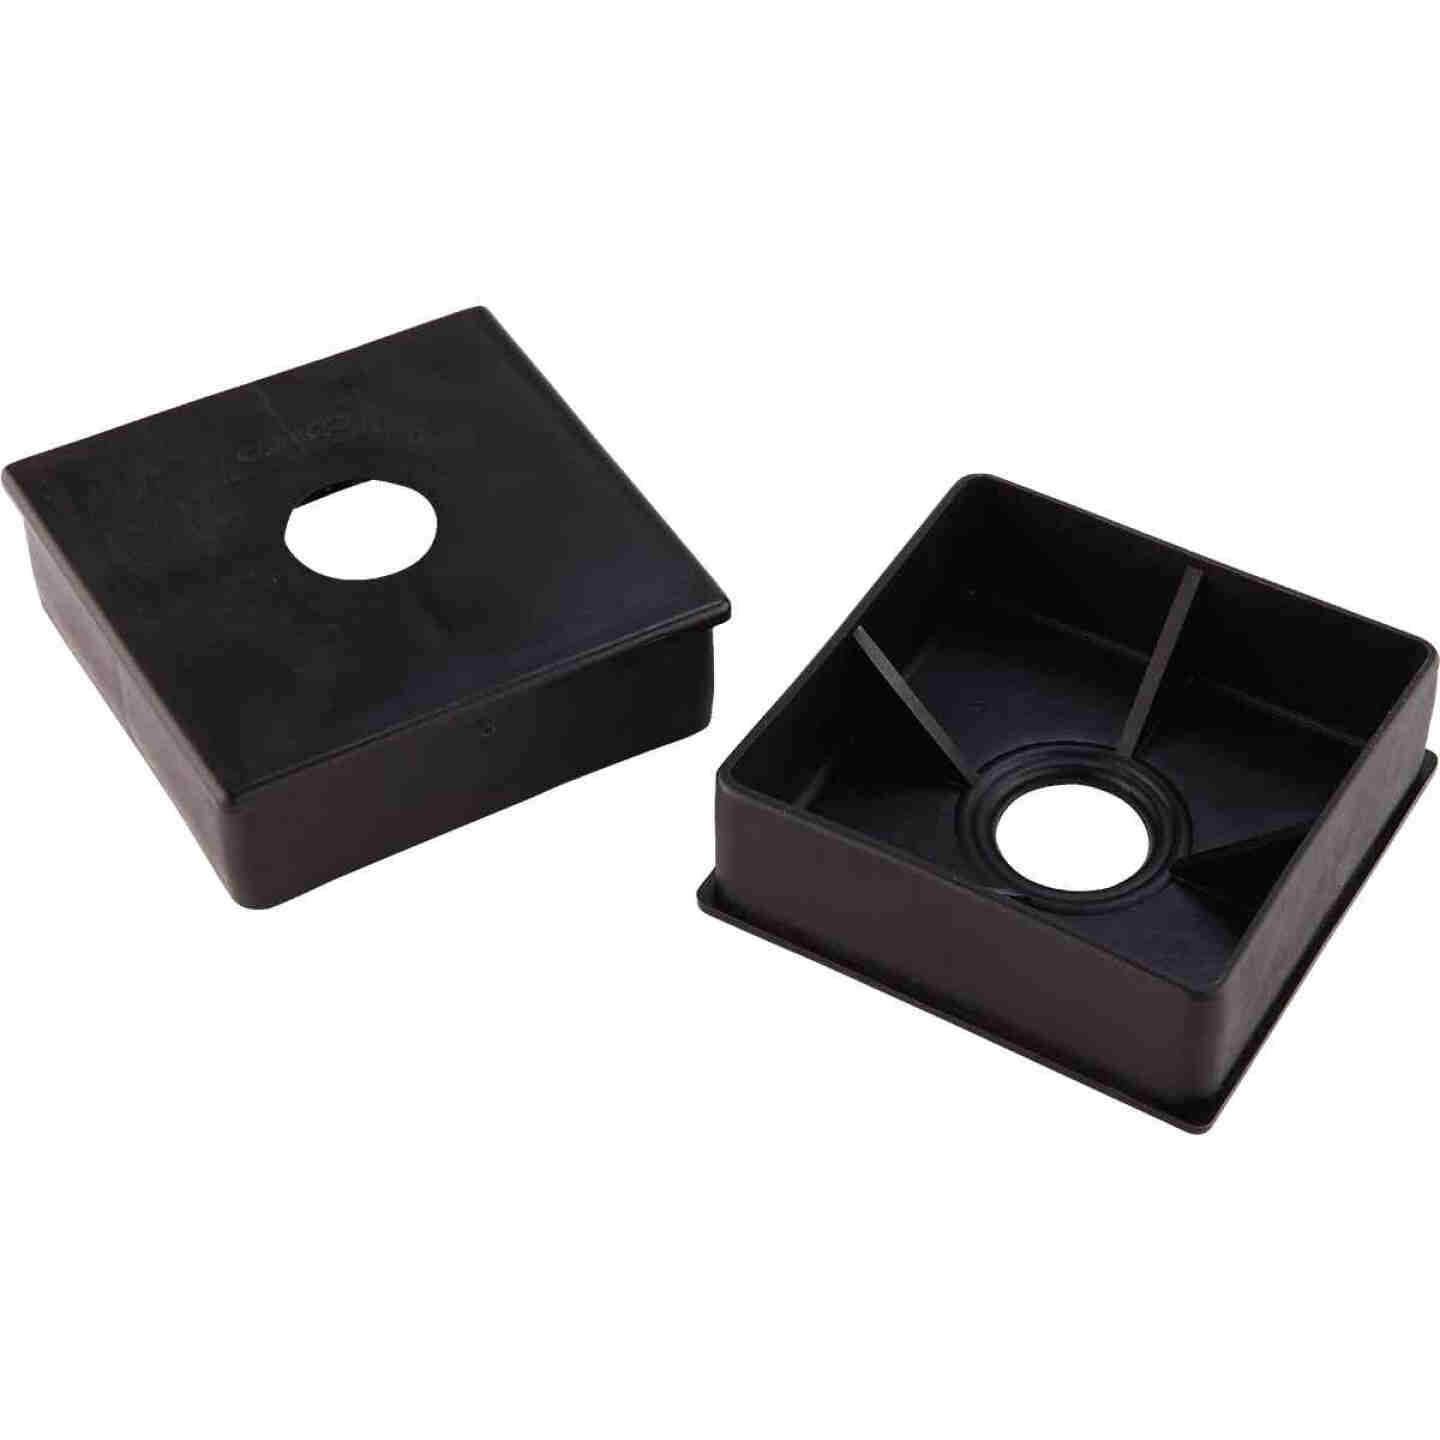 Camco 4 In. Polyethylene RV Bumper Cap, (2-Pack) Image 1